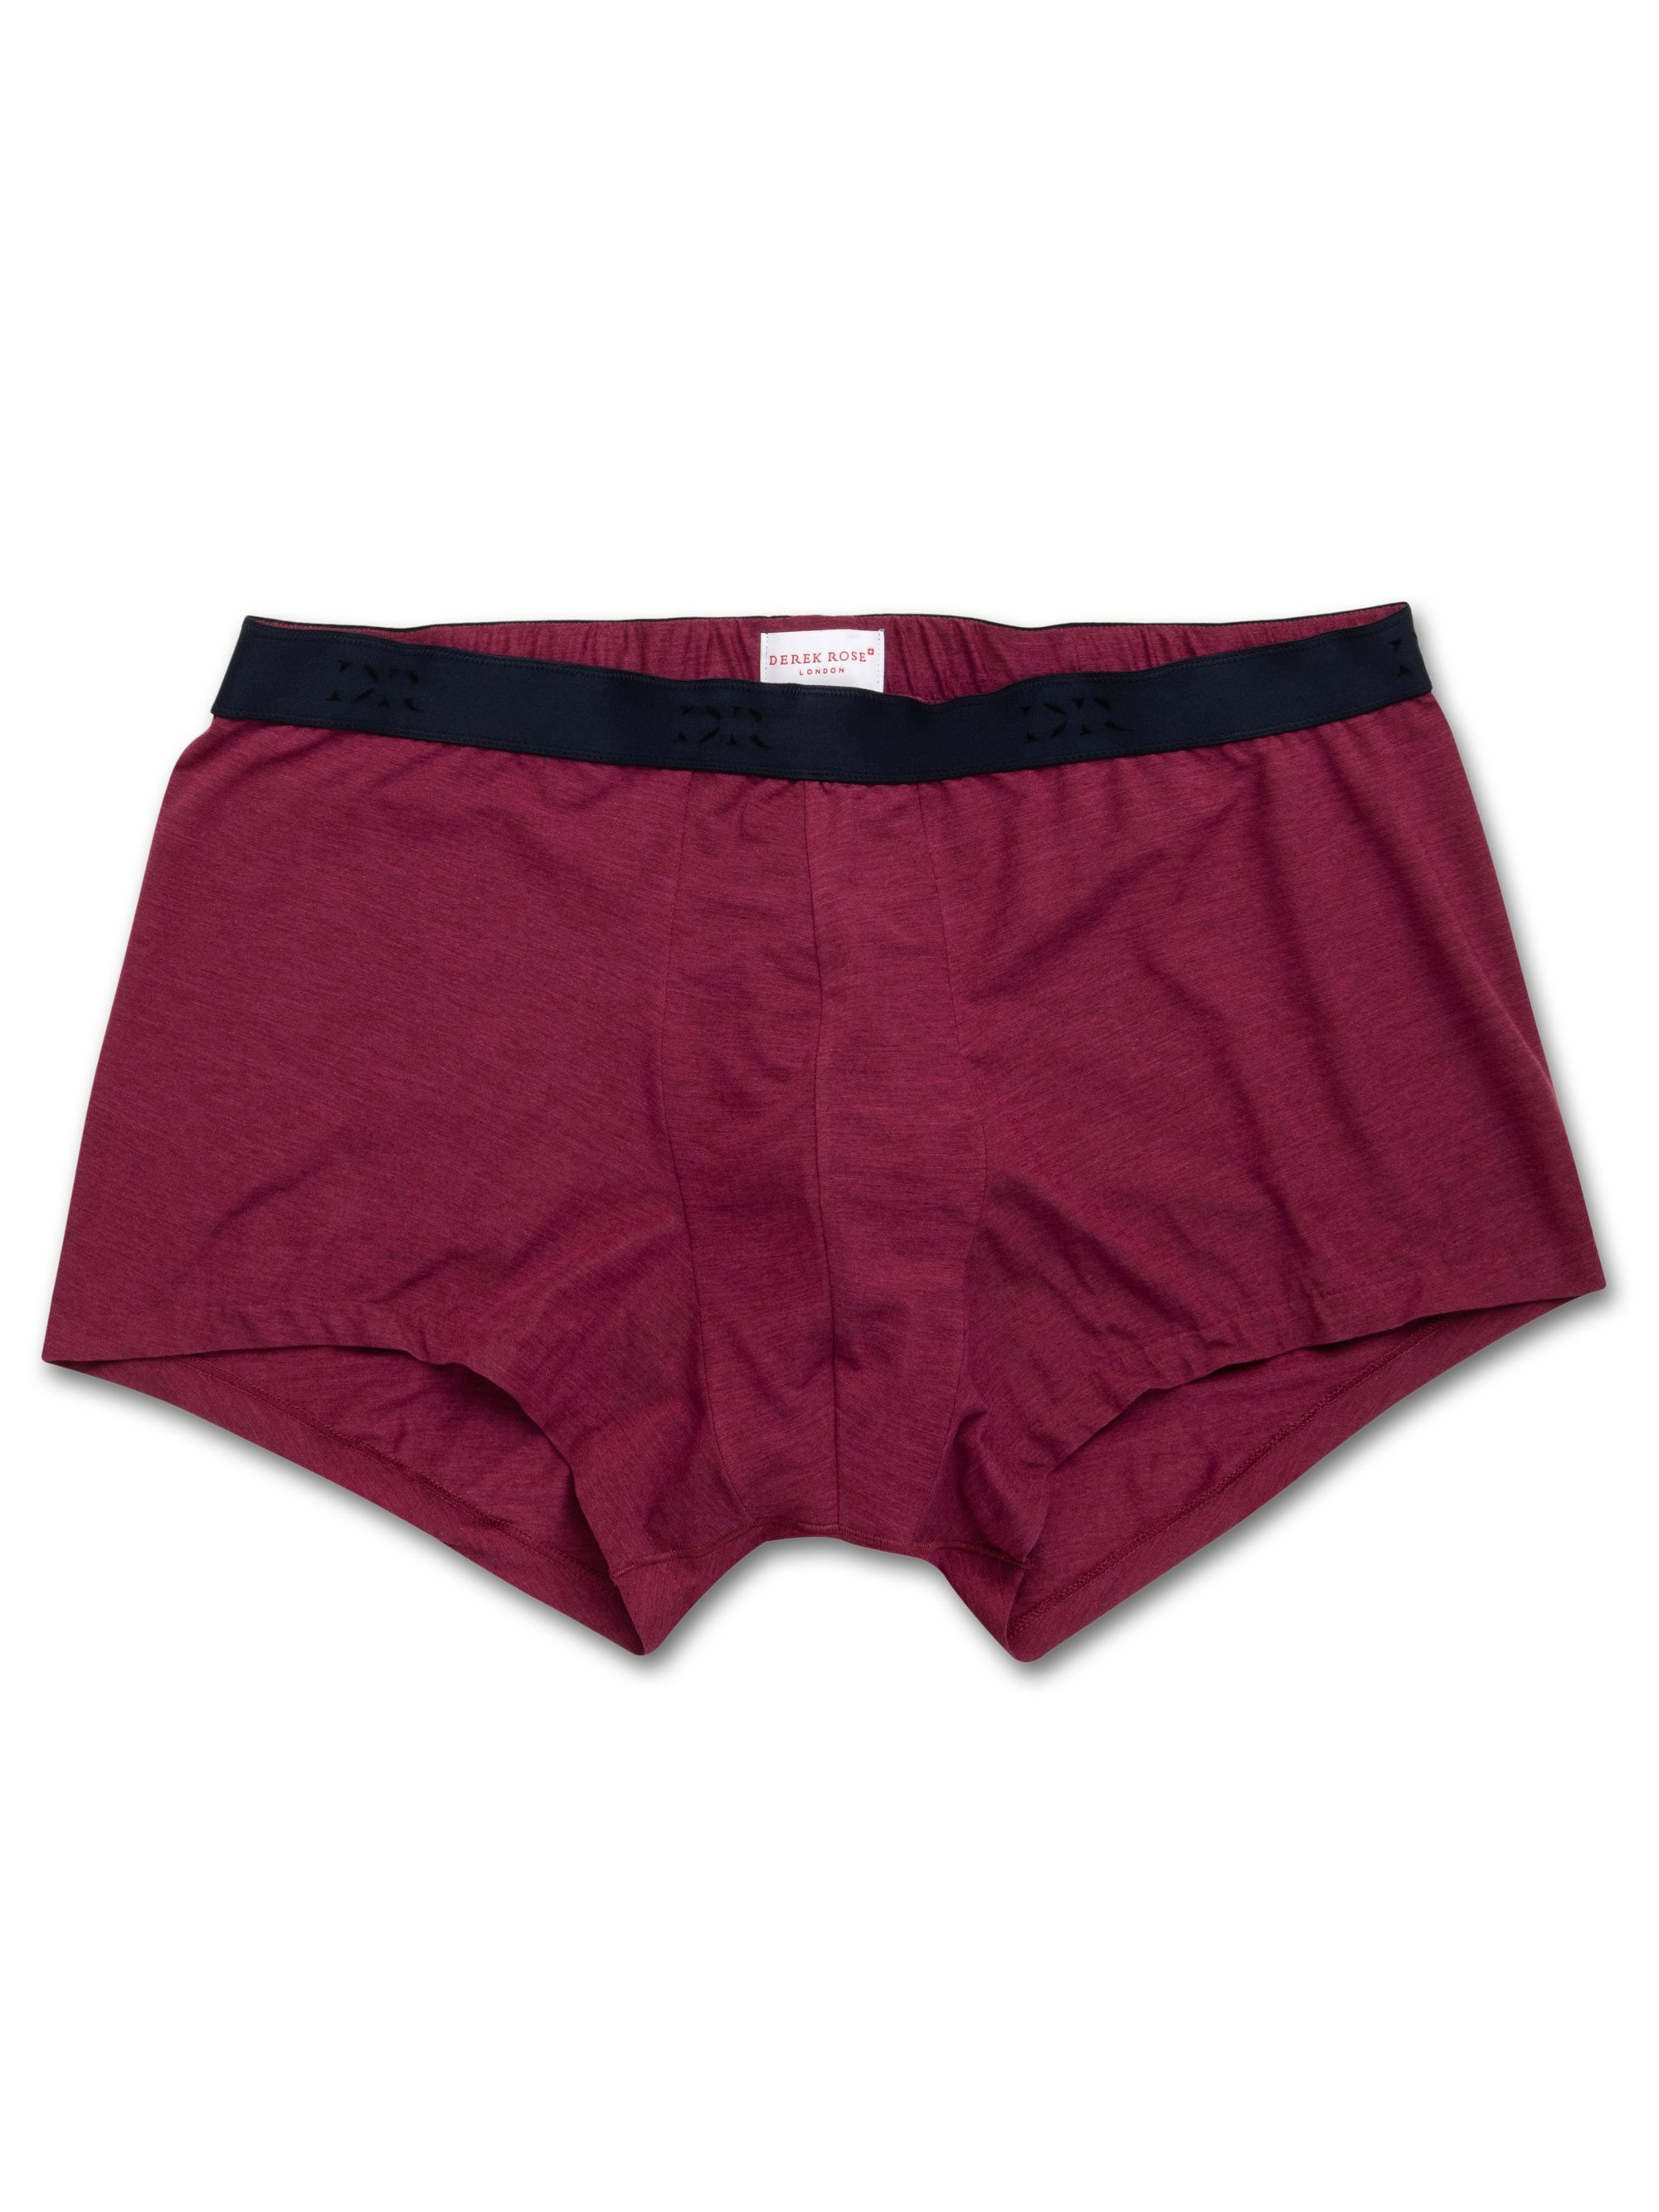 Men's Hipster Ethan Micro Modal Stretch Burgundy